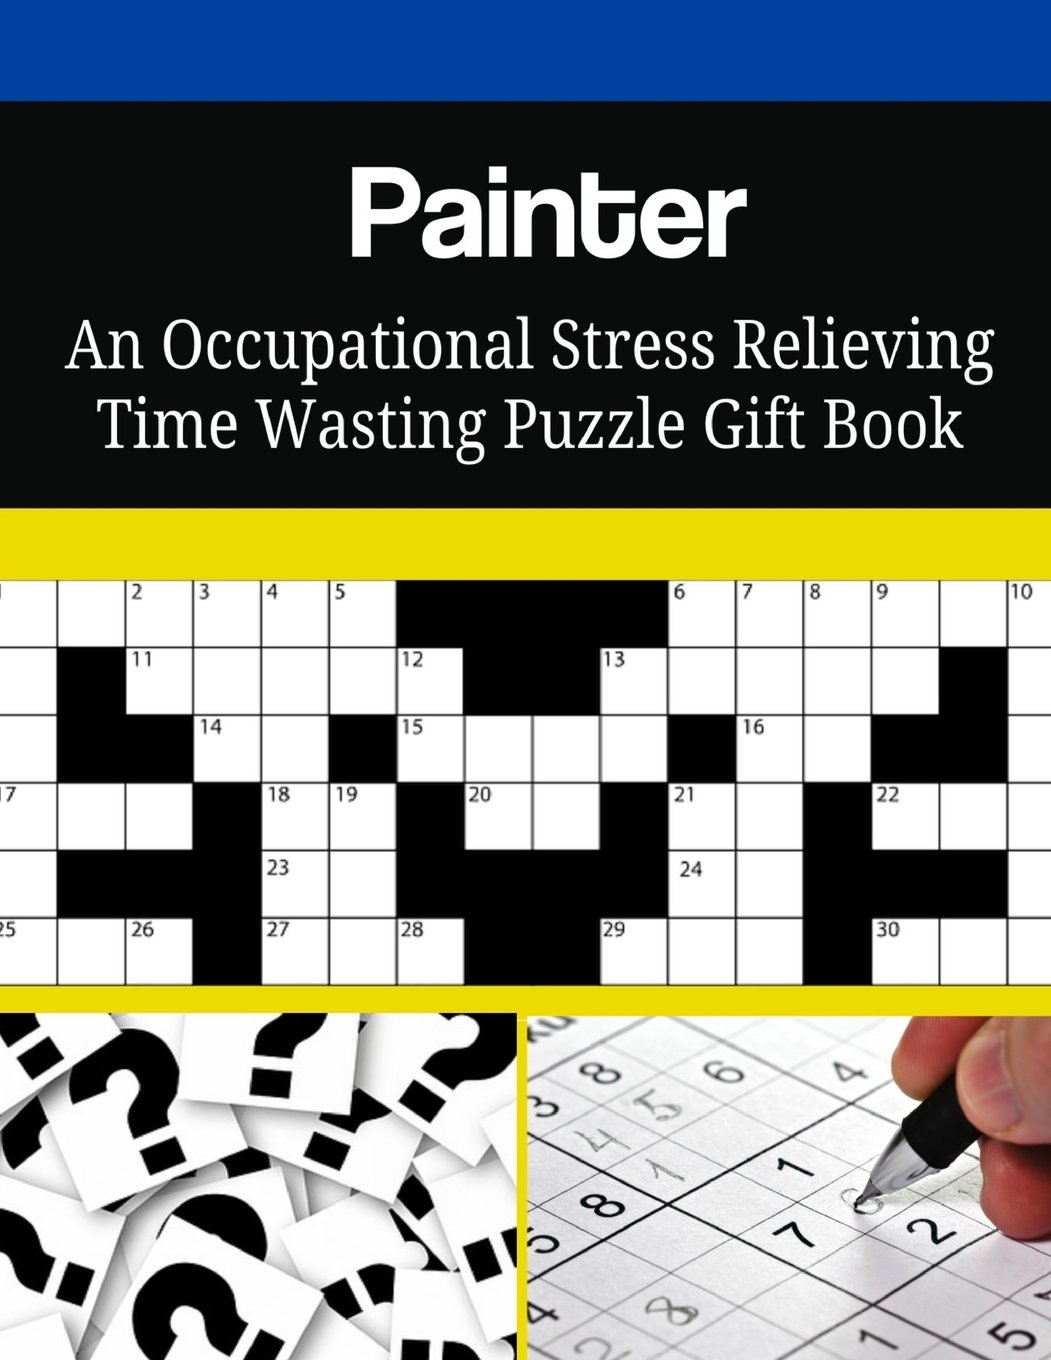 Download Painter An Occupational Stress Relieving Time Wasting Puzzle Gift Book ebook